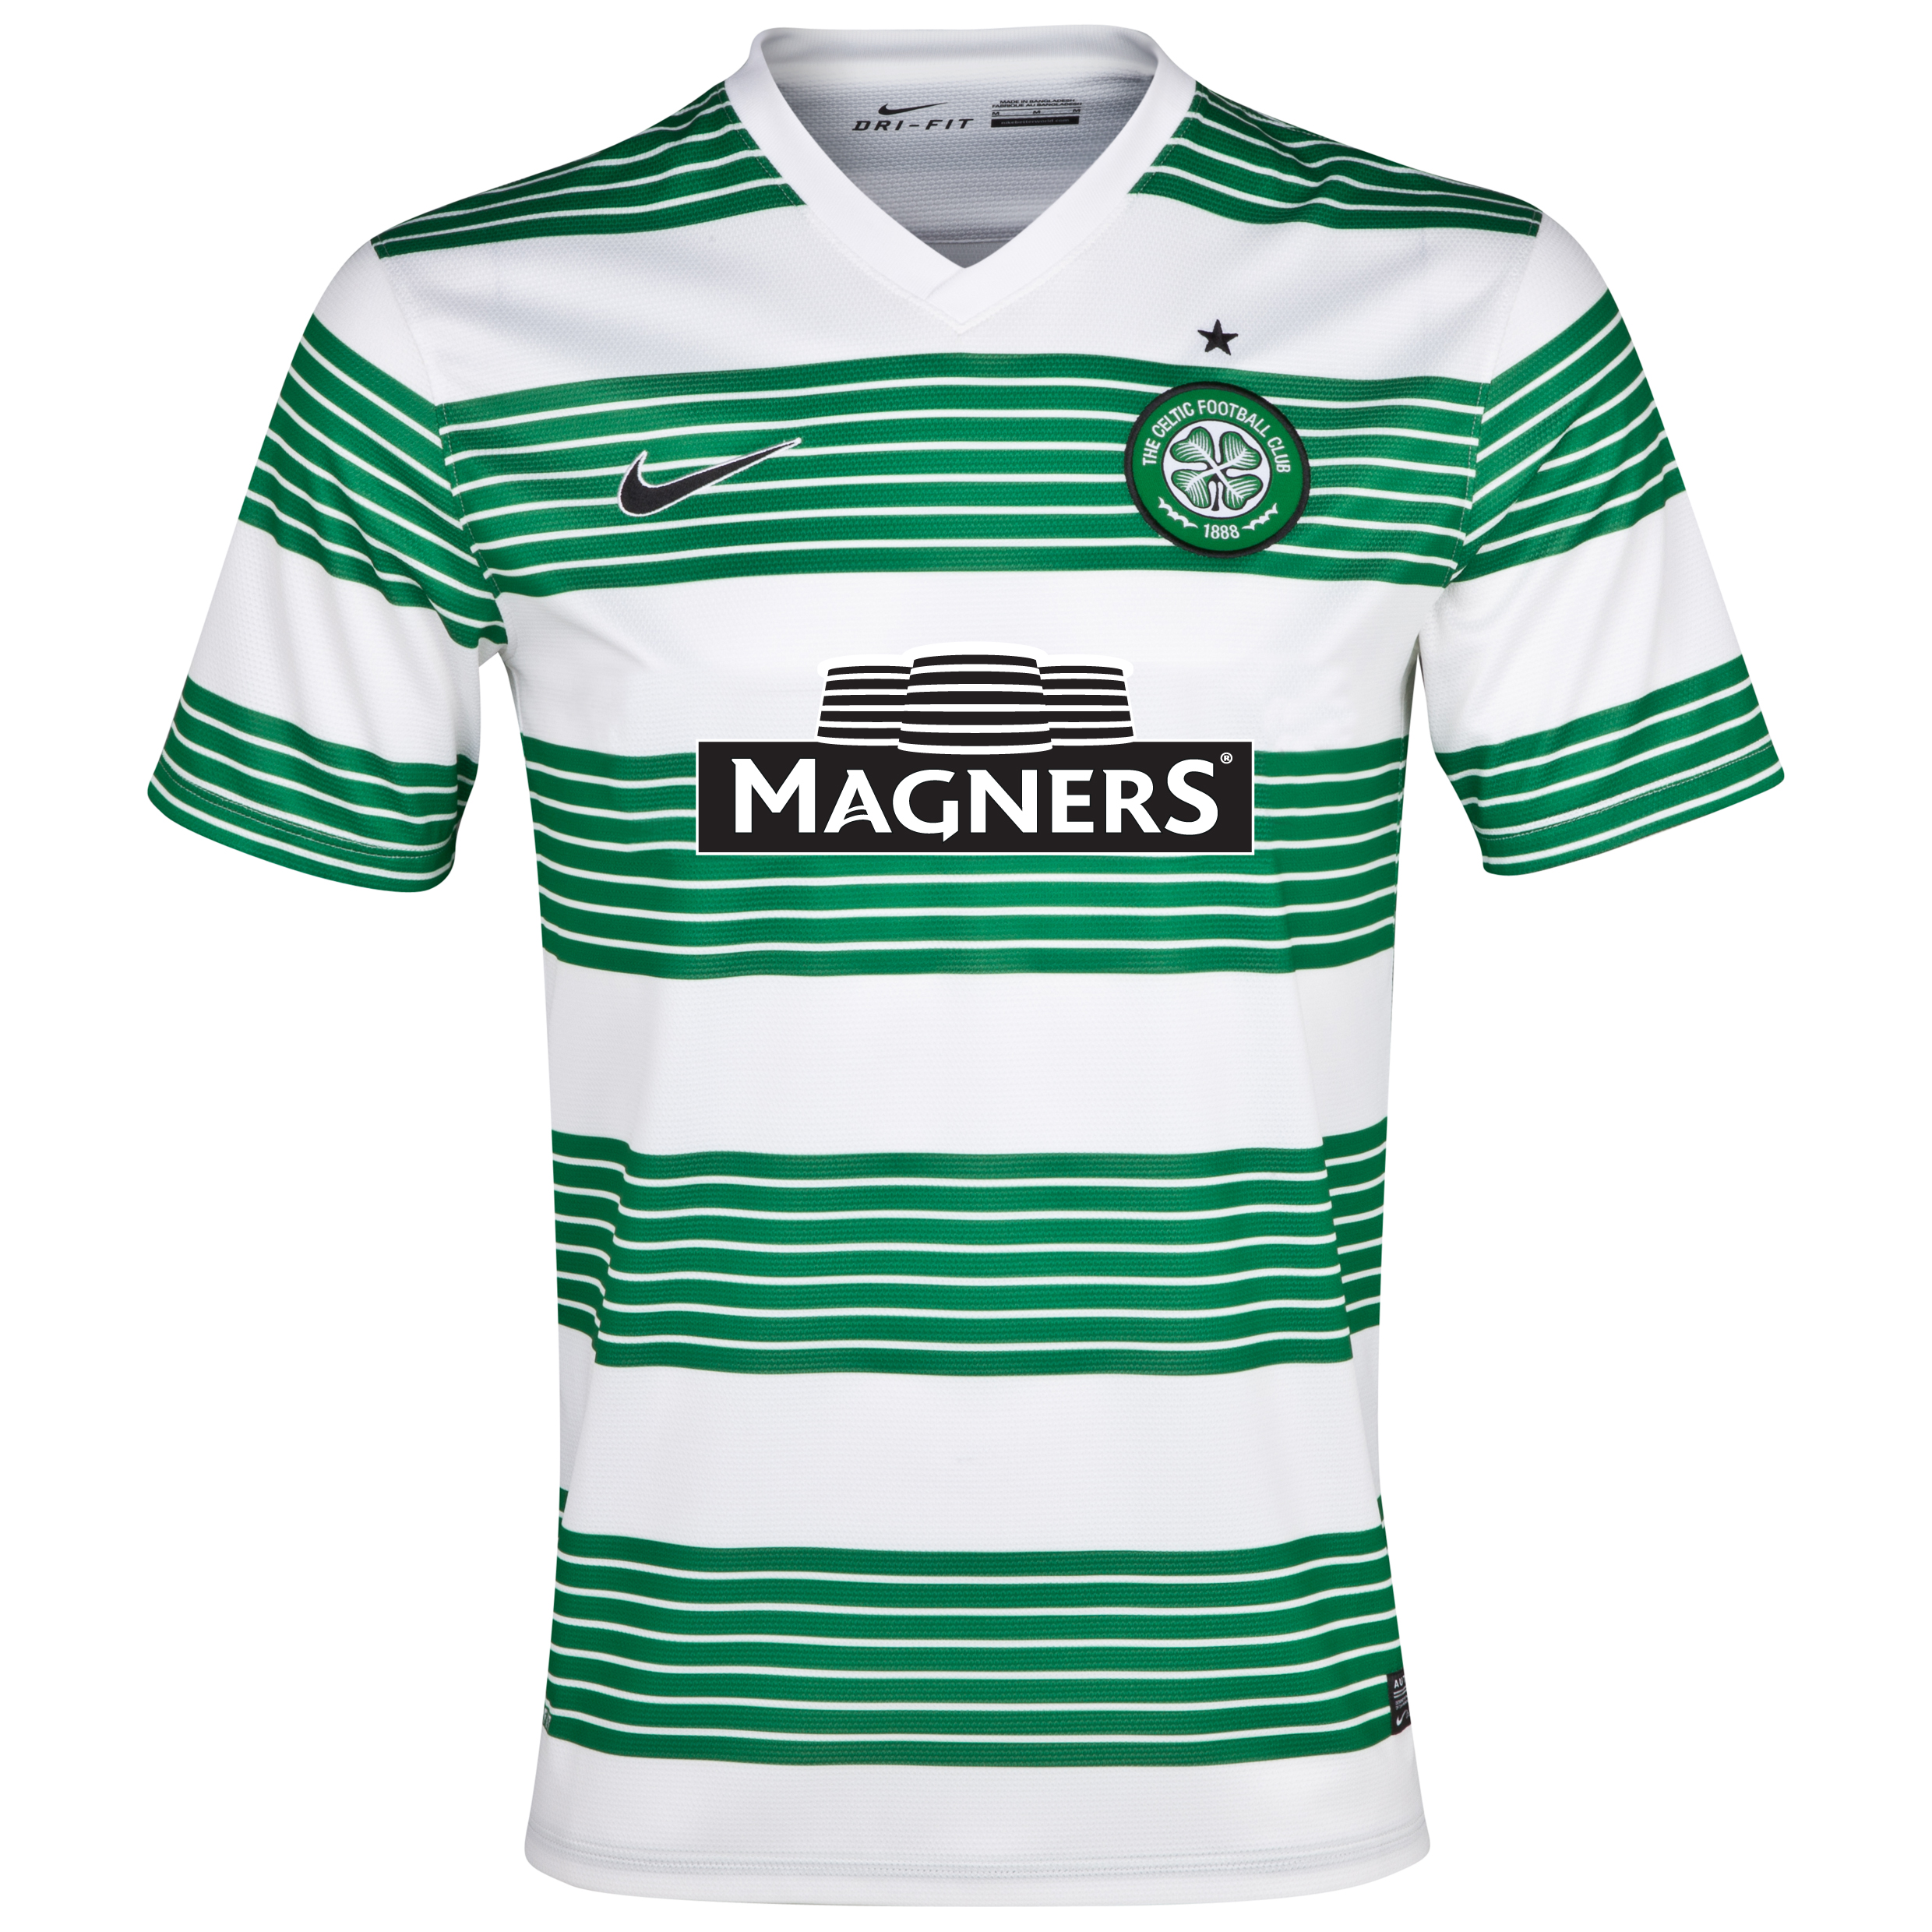 Celtic Home Shirt 2013/15 - With Sponsor